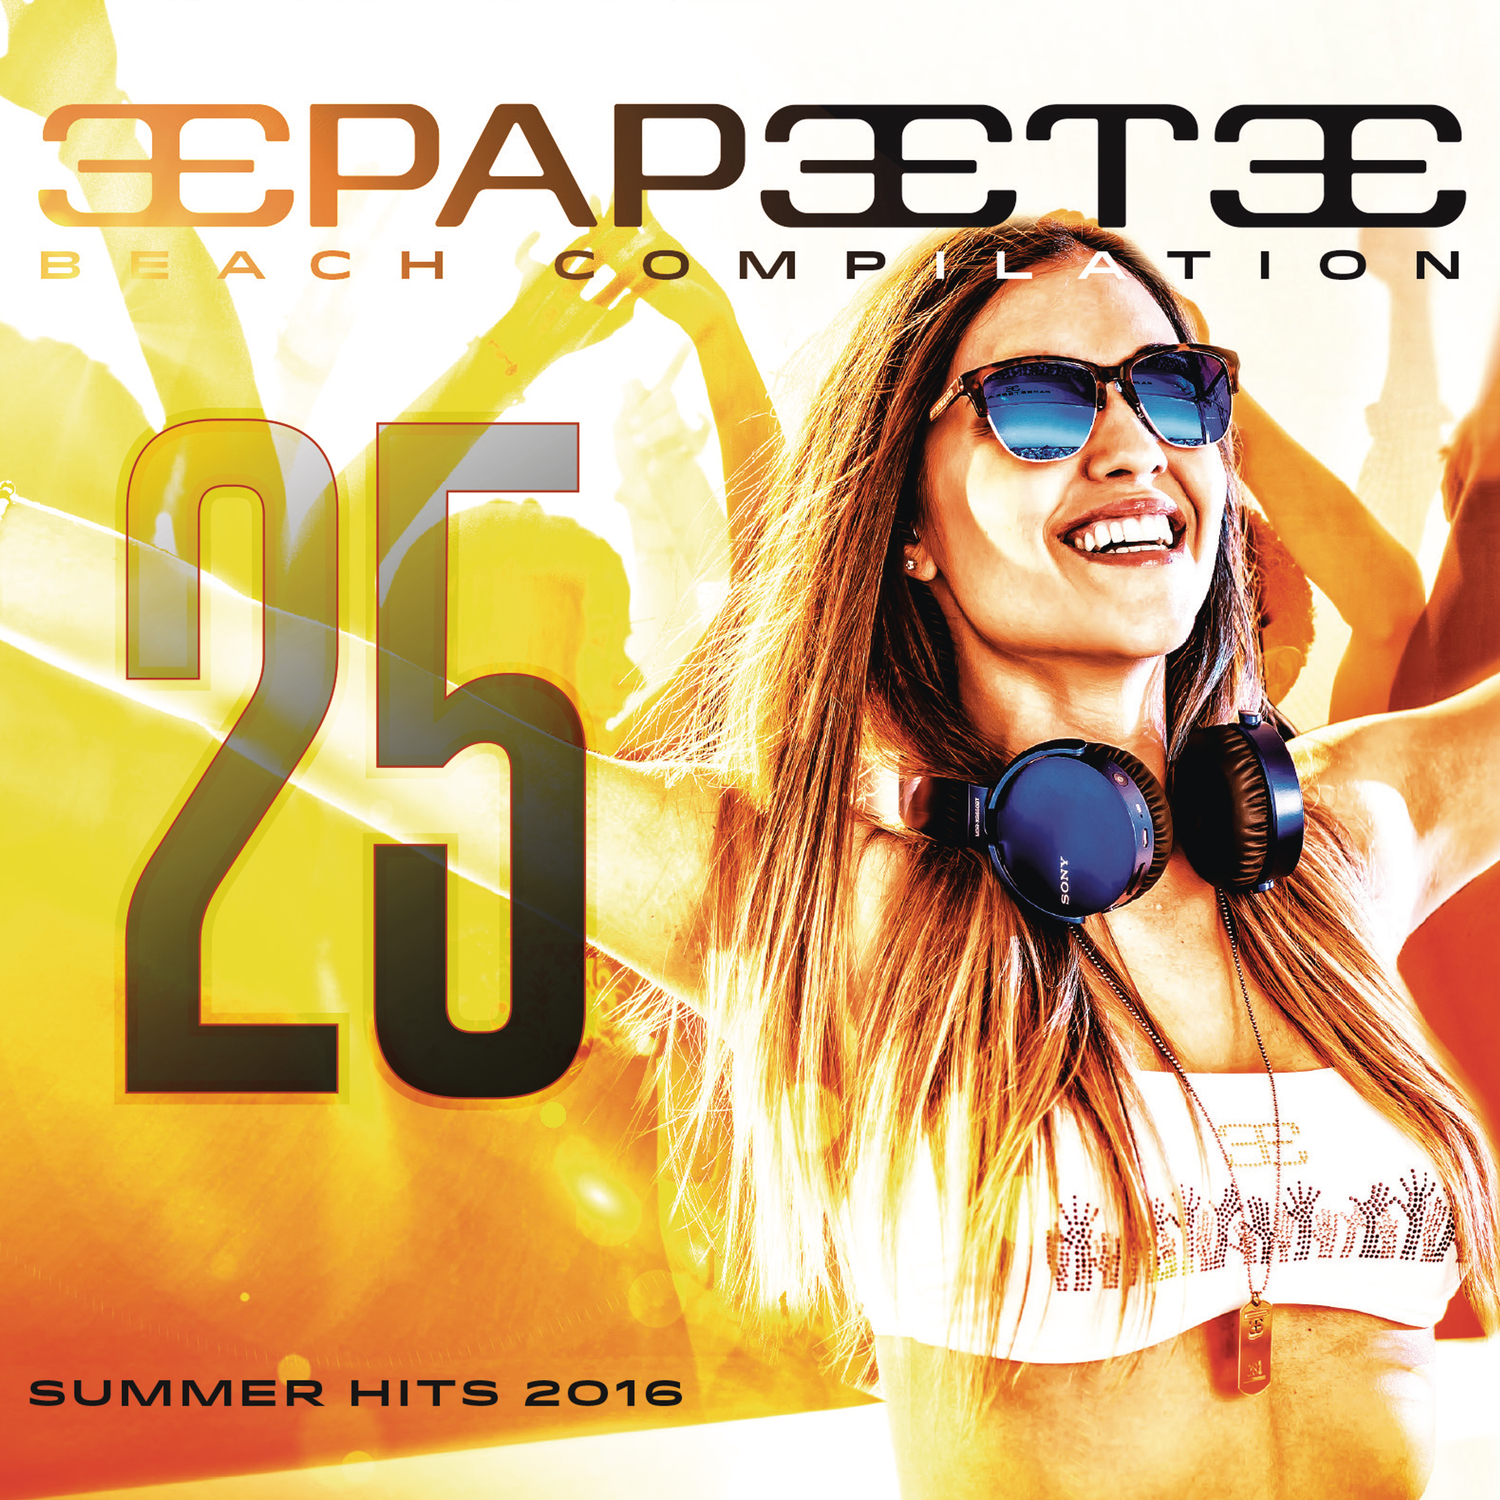 Papeete Beach Compilation, Vol. 25